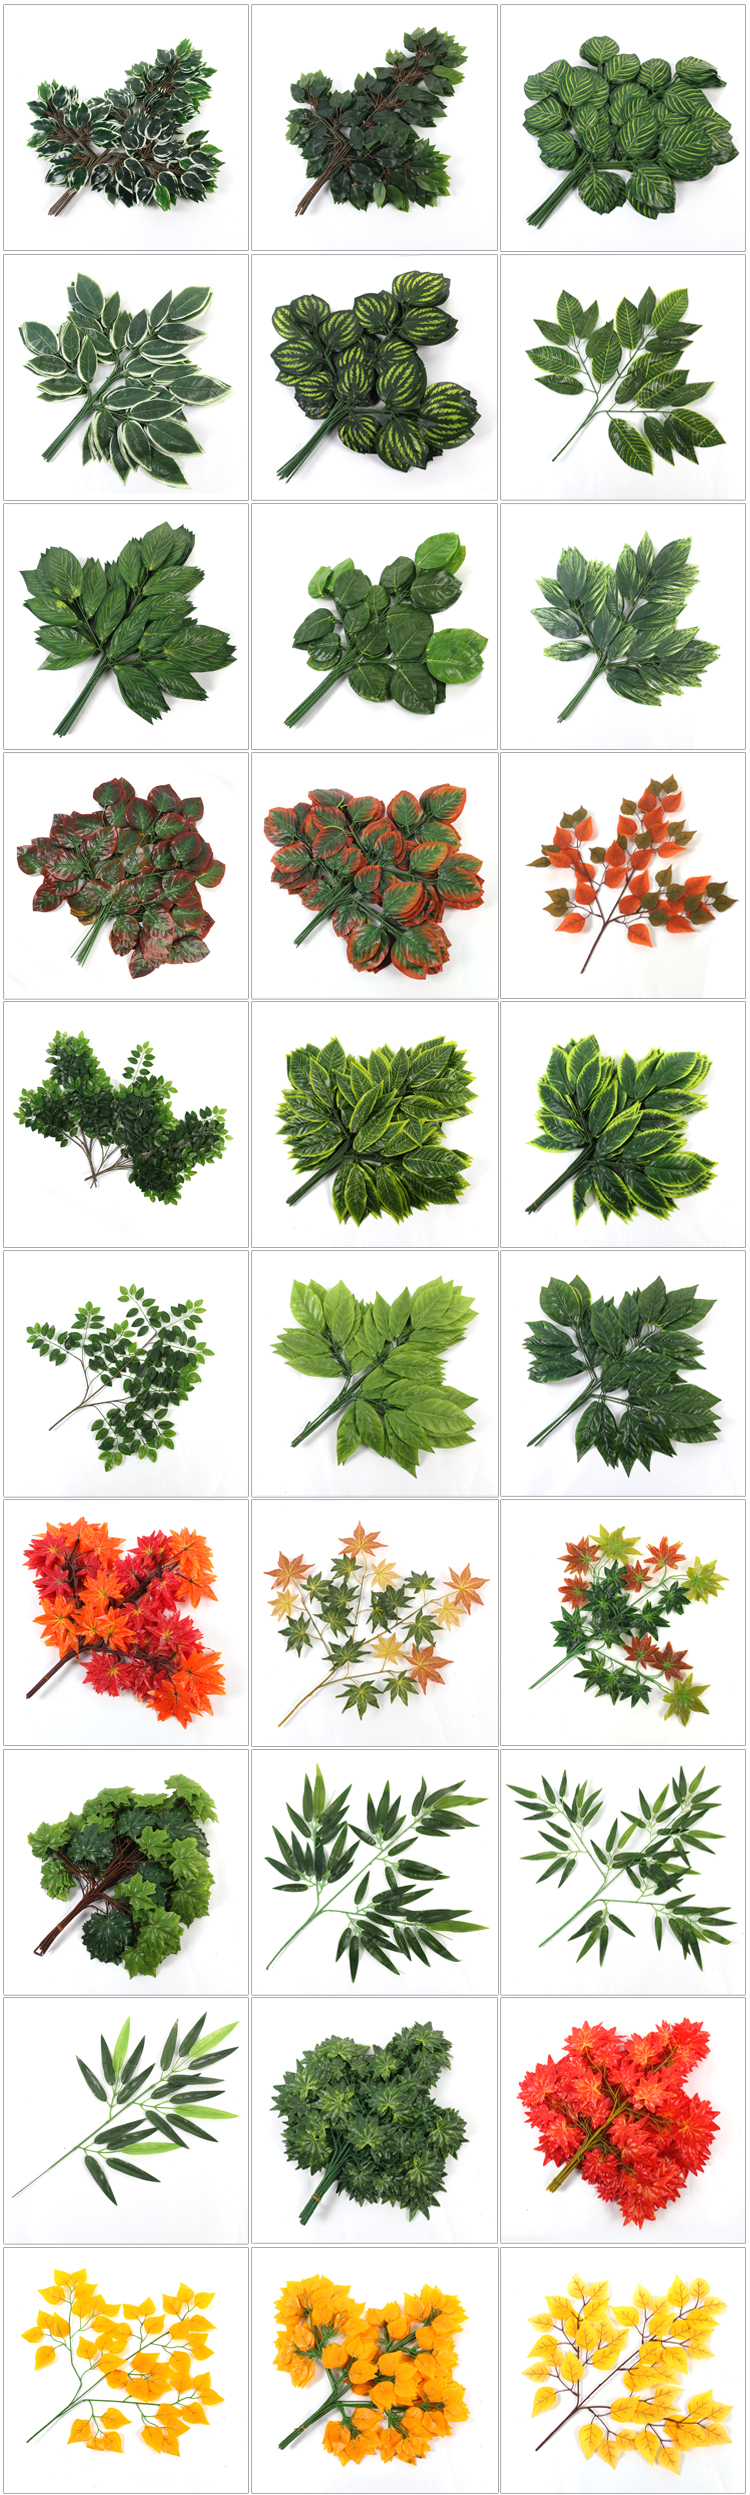 Artificial leaves green plants plastic tree branch for decoration wedding